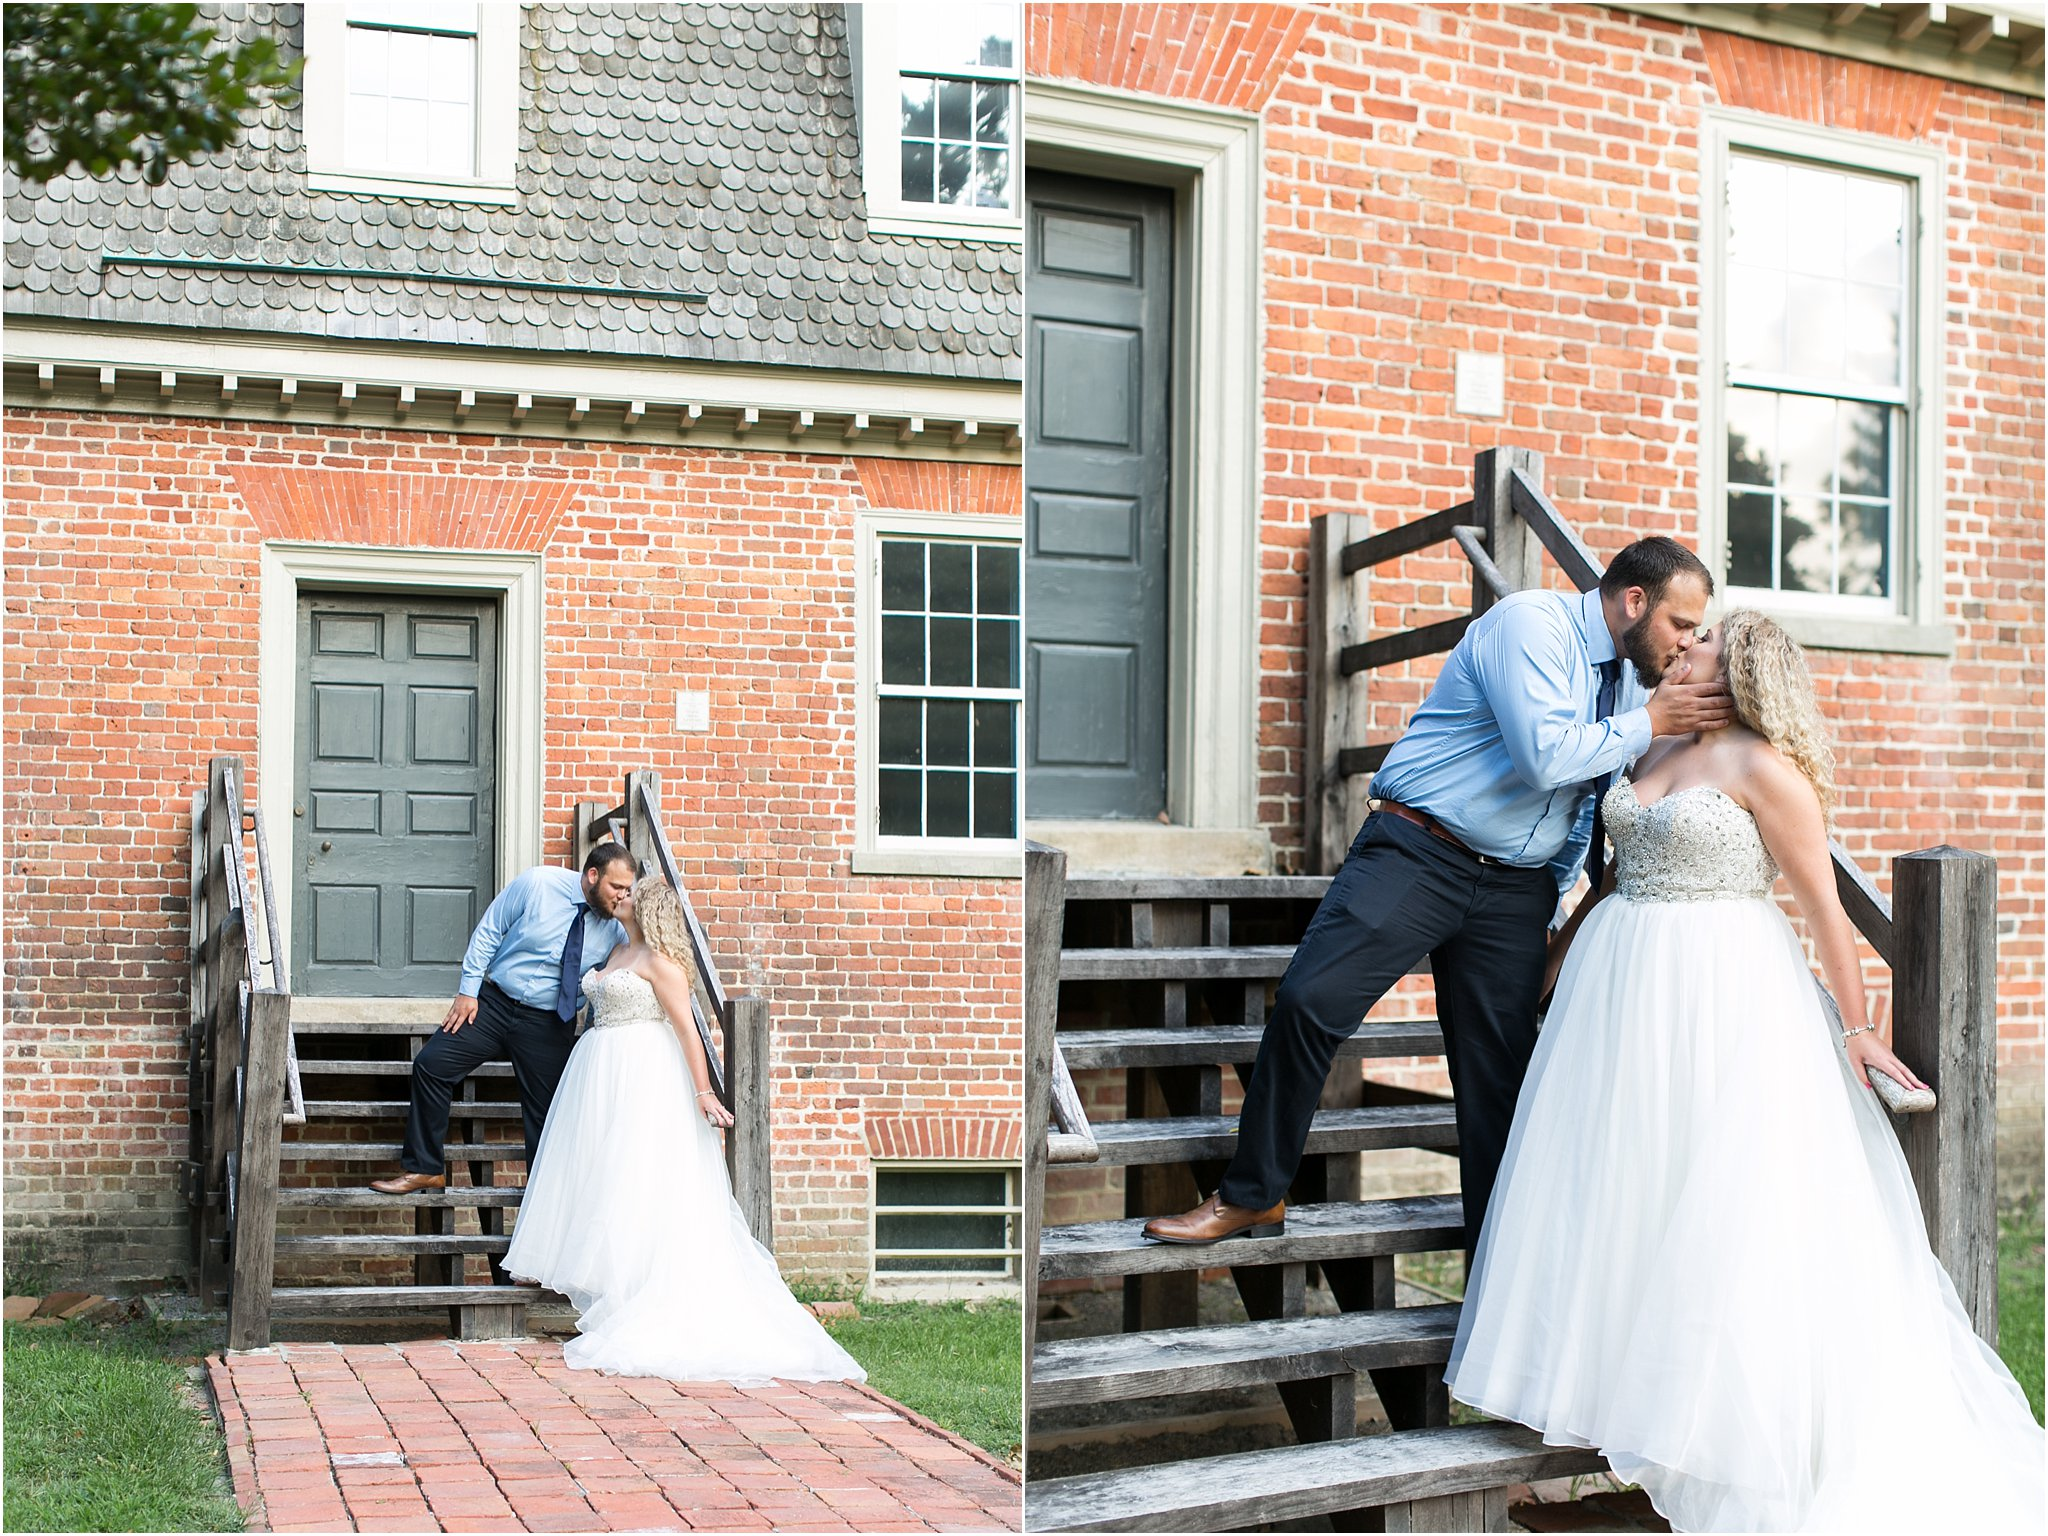 jessica_ryan_photography_virginia_virginia_beach_francis_land_house_portraits_anniversary_portraits_bride_and_groom_beloved_historical_home_wedding_2692